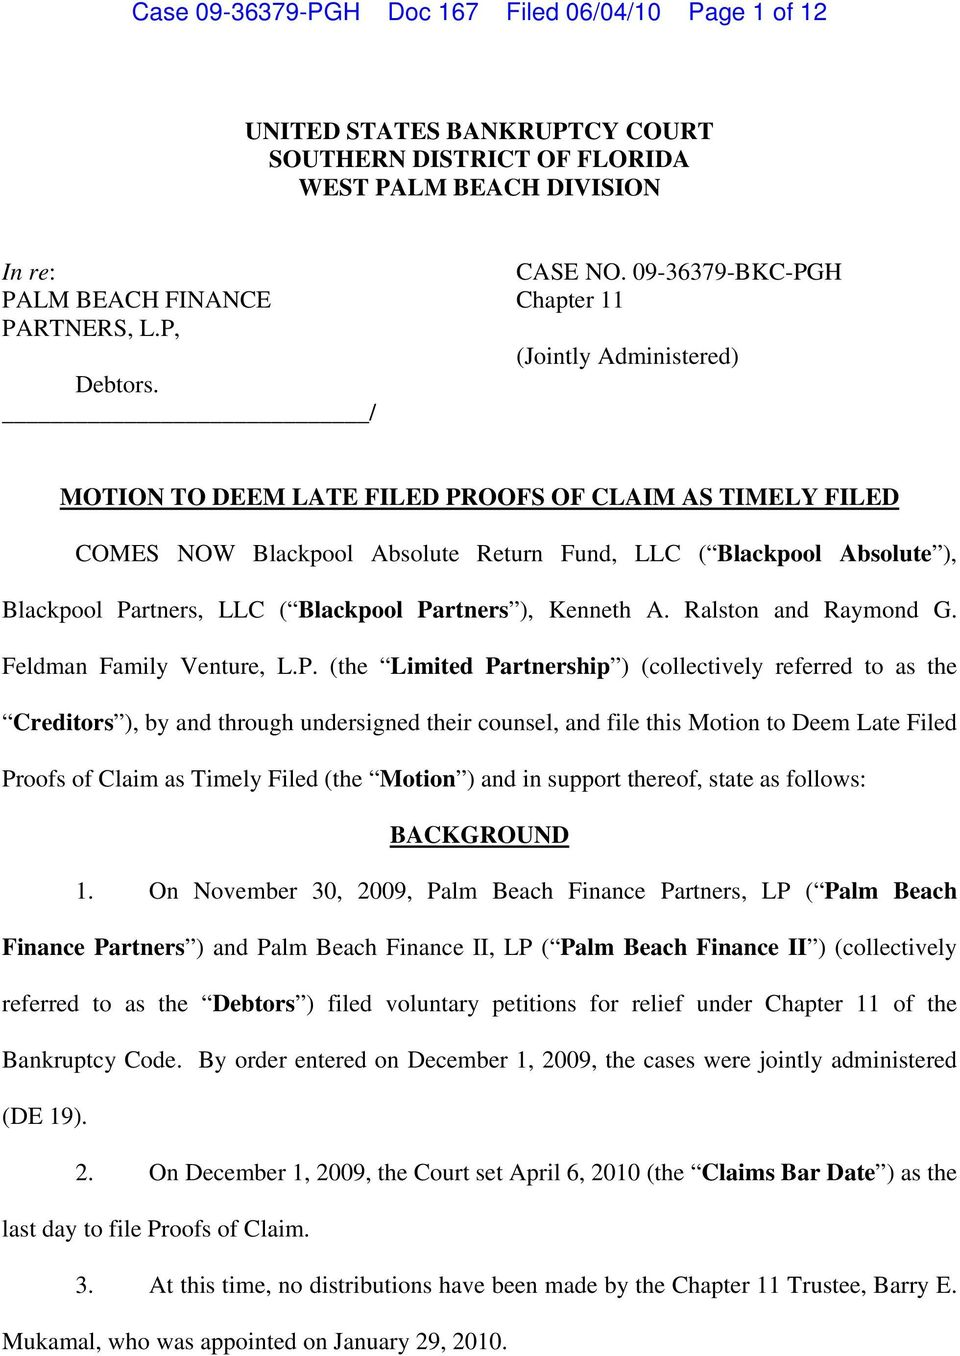 / MOTION TO DEEM LATE FILED PROOFS OF CLAIM AS TIMELY FILED COMES NOW Blackpool Absolute Return Fund, LLC ( Blackpool Absolute ), Blackpool Partners, LLC ( Blackpool Partners ), Kenneth A.